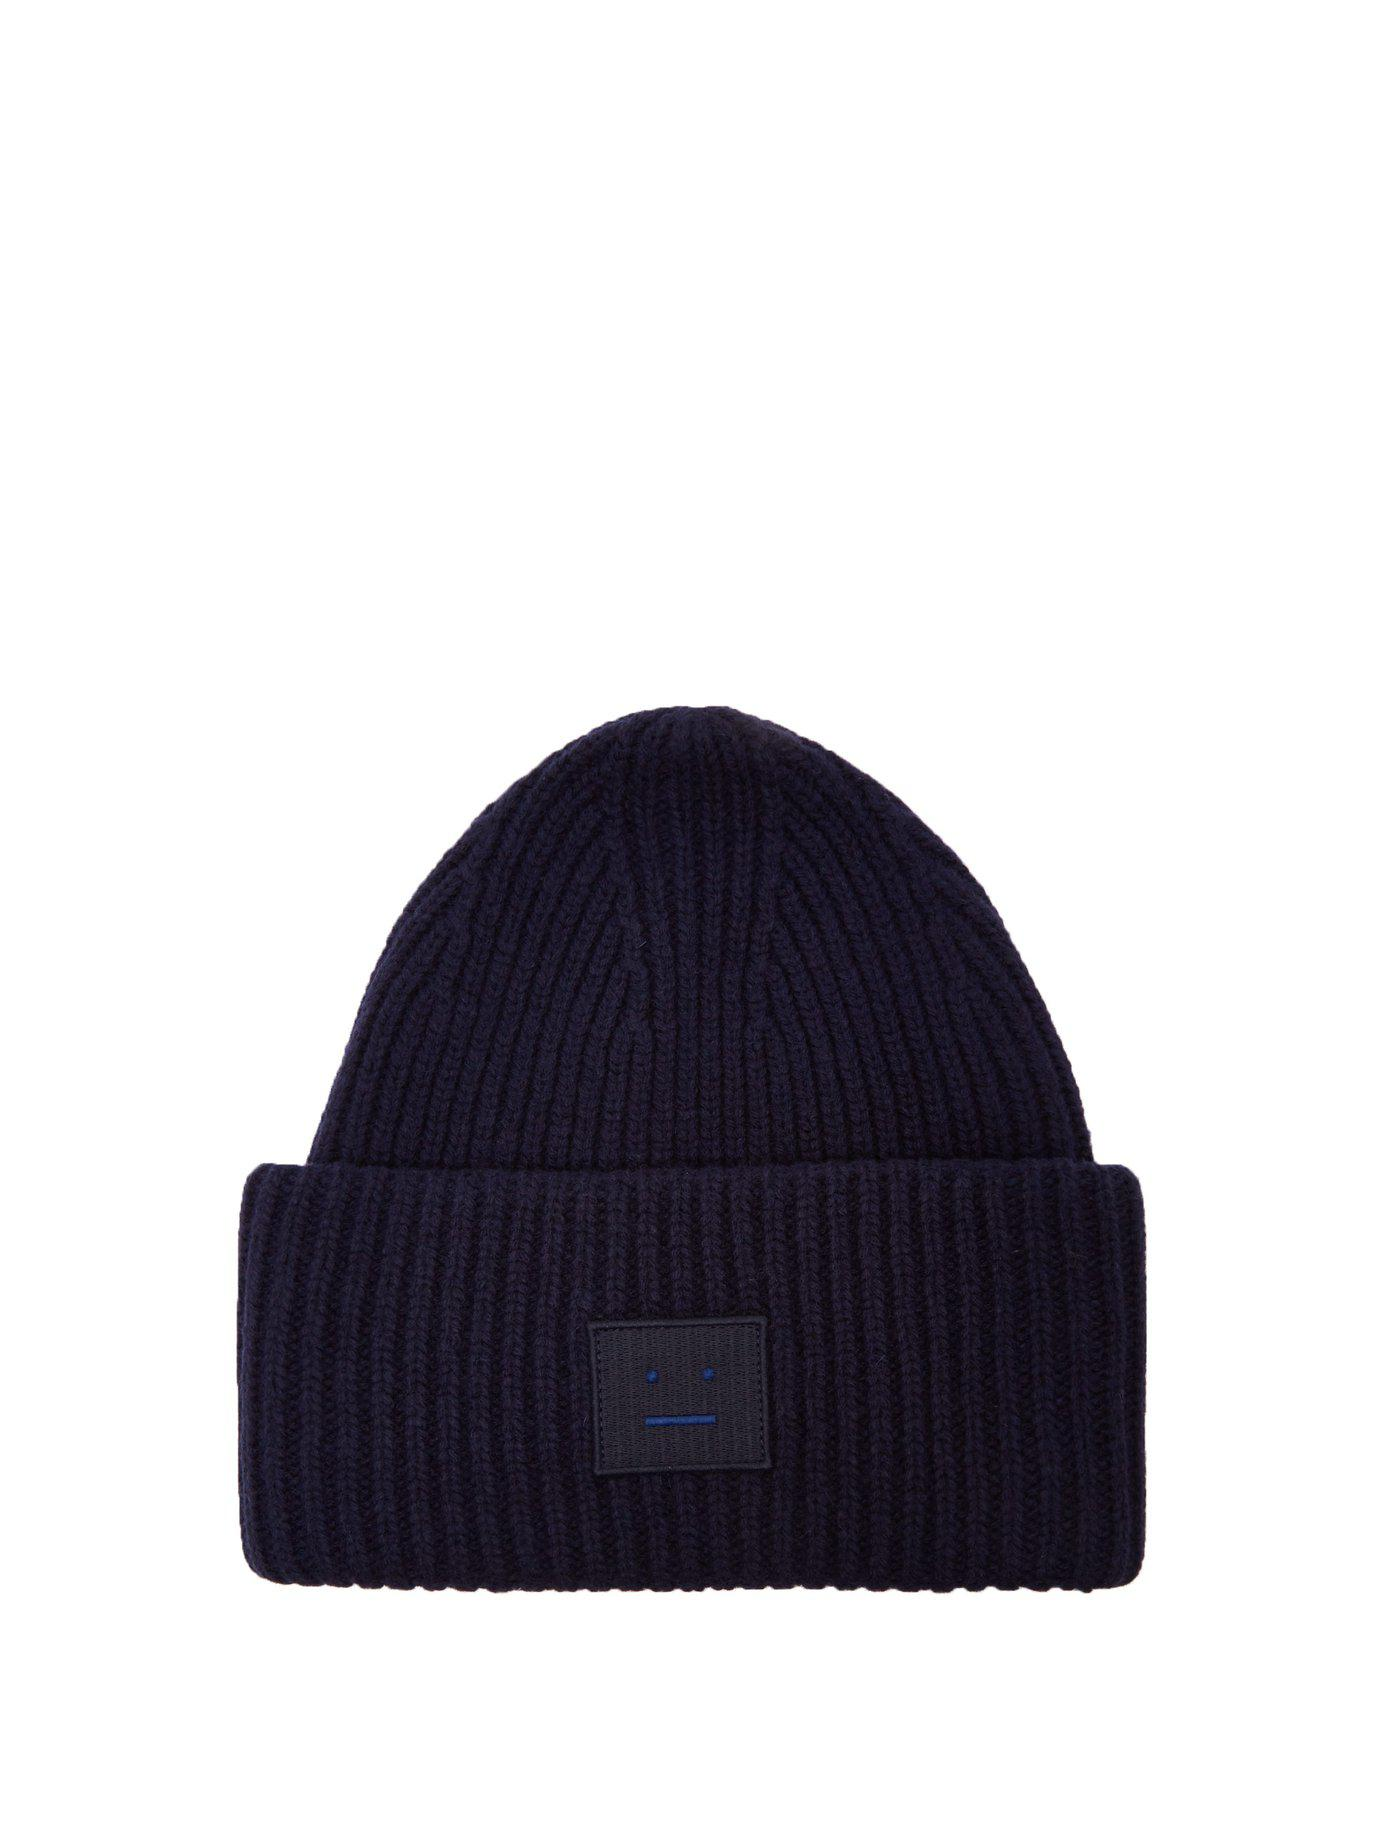 73a4bba21993b5 Acne Studios. Women's Blue Pansy S Face Ribbed-knit Beanie Hat